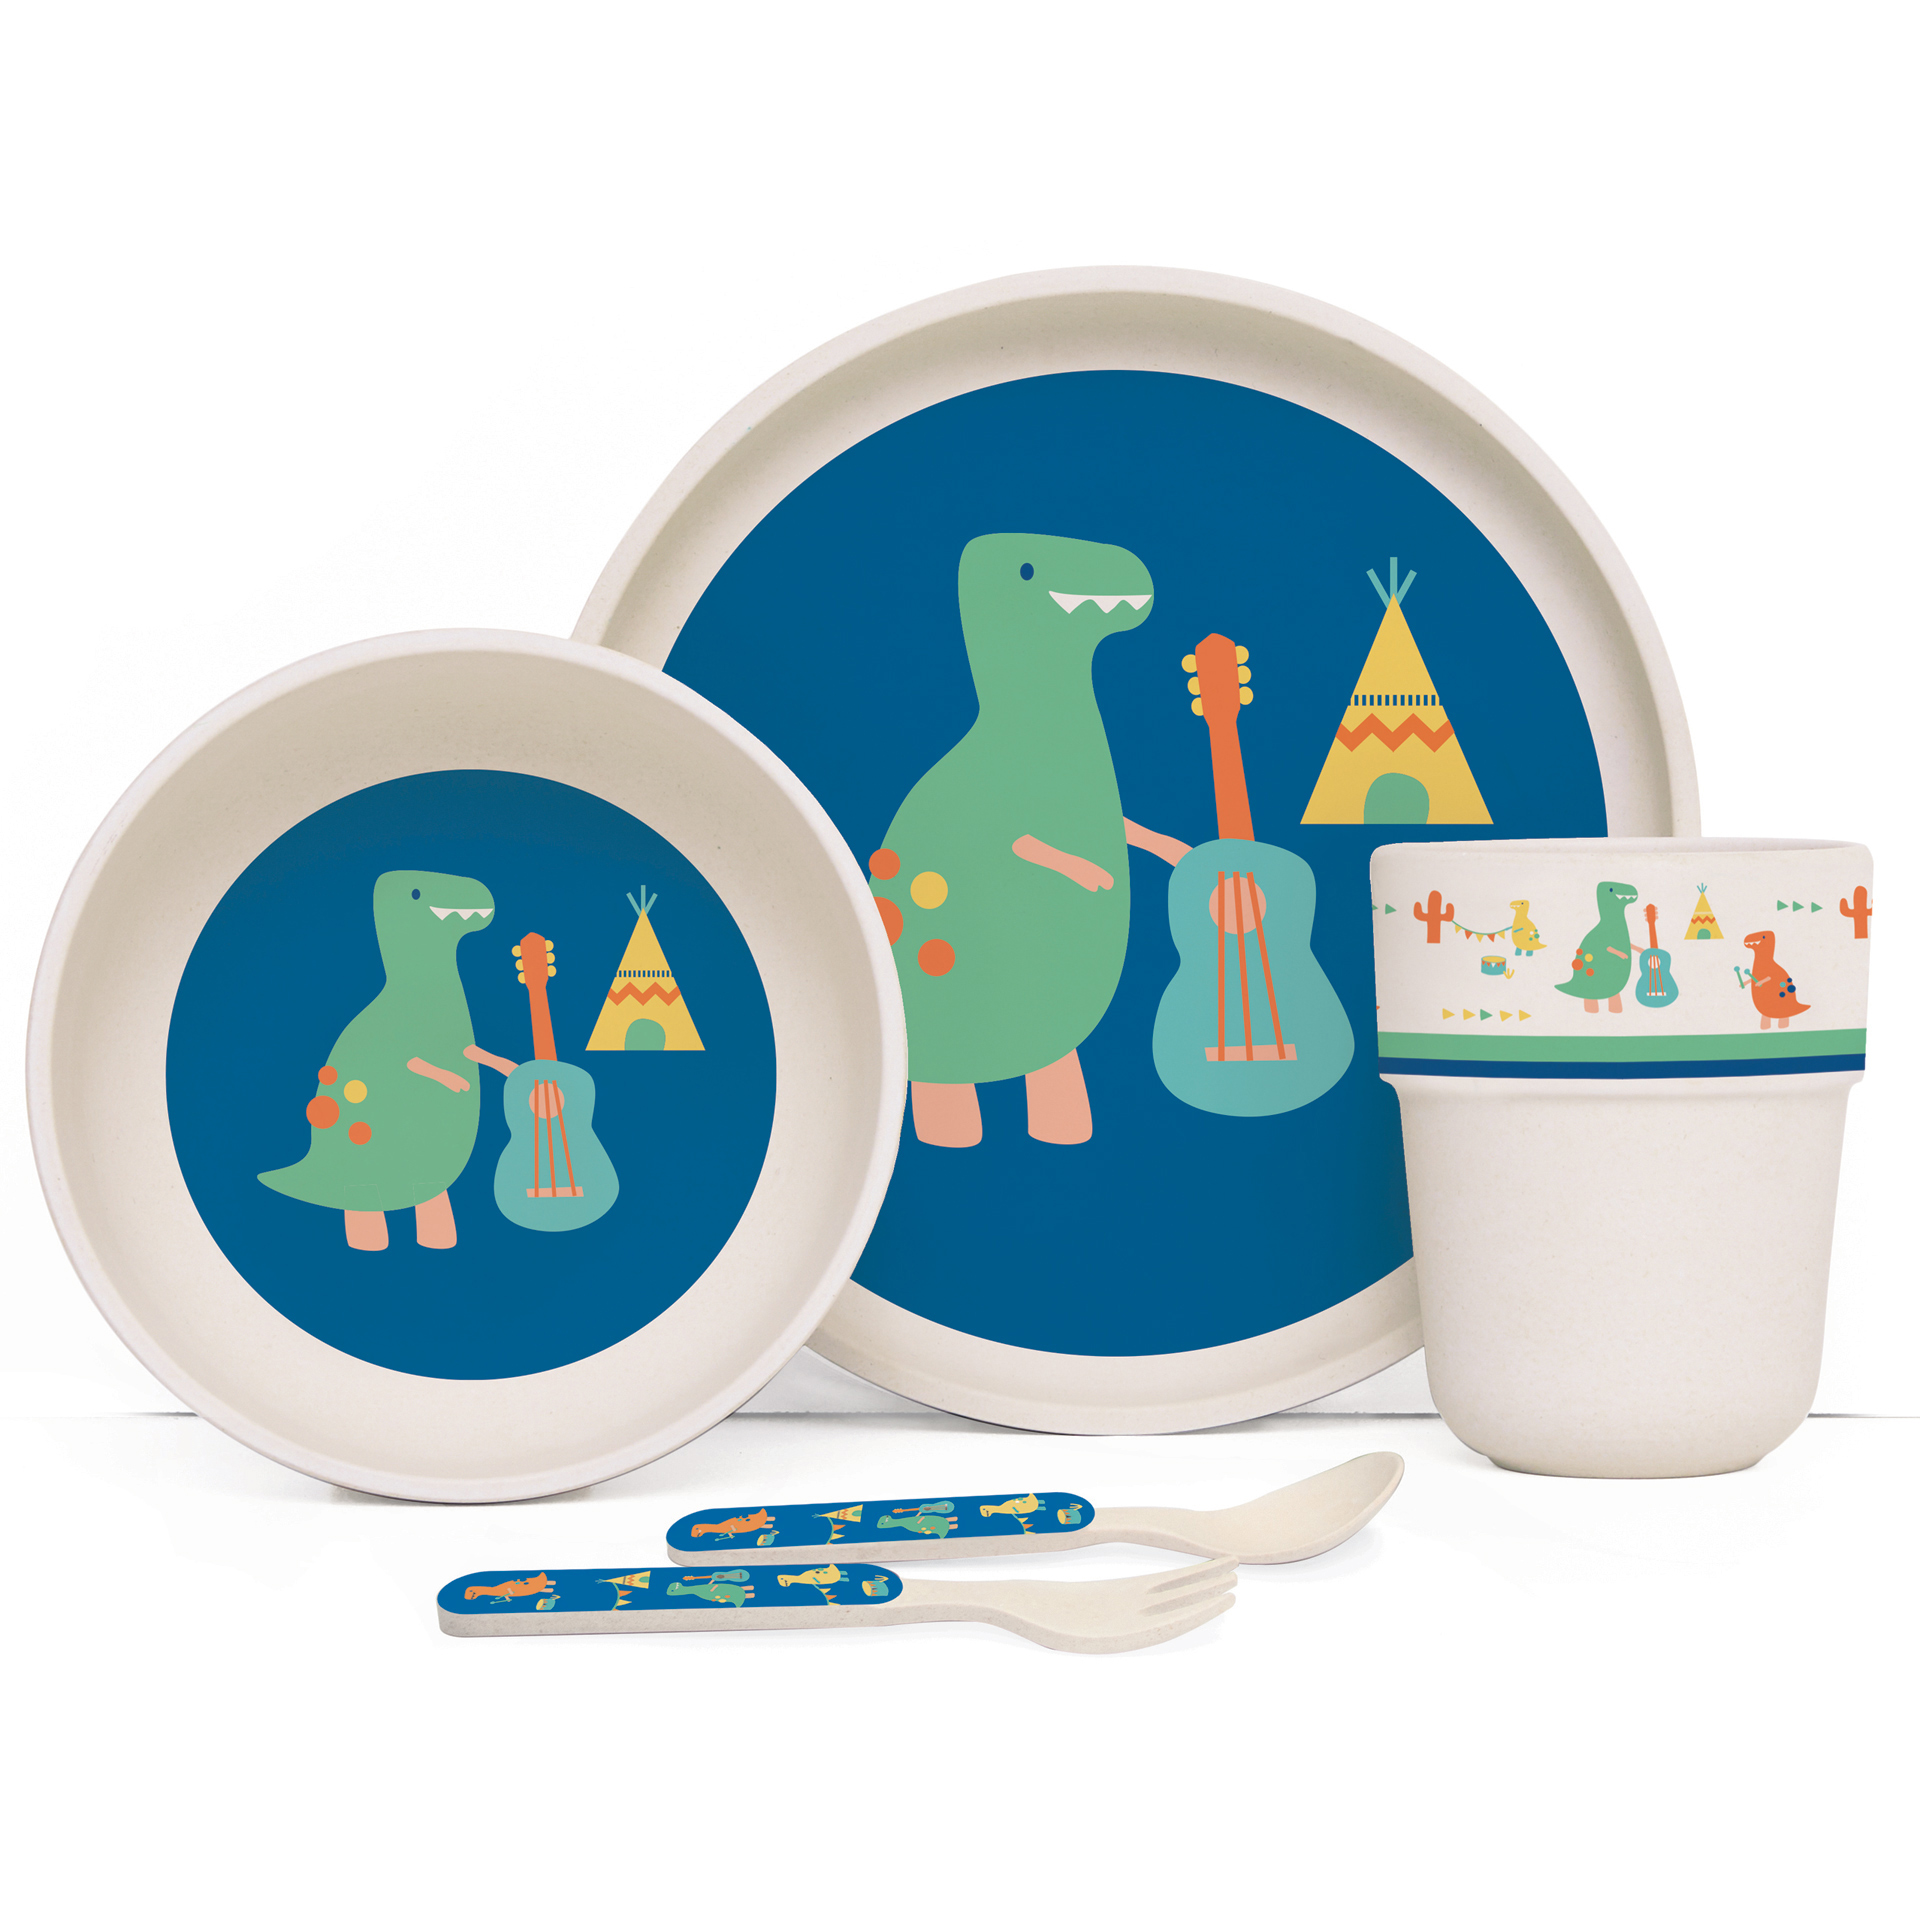 Bamboo Mealtime Sets